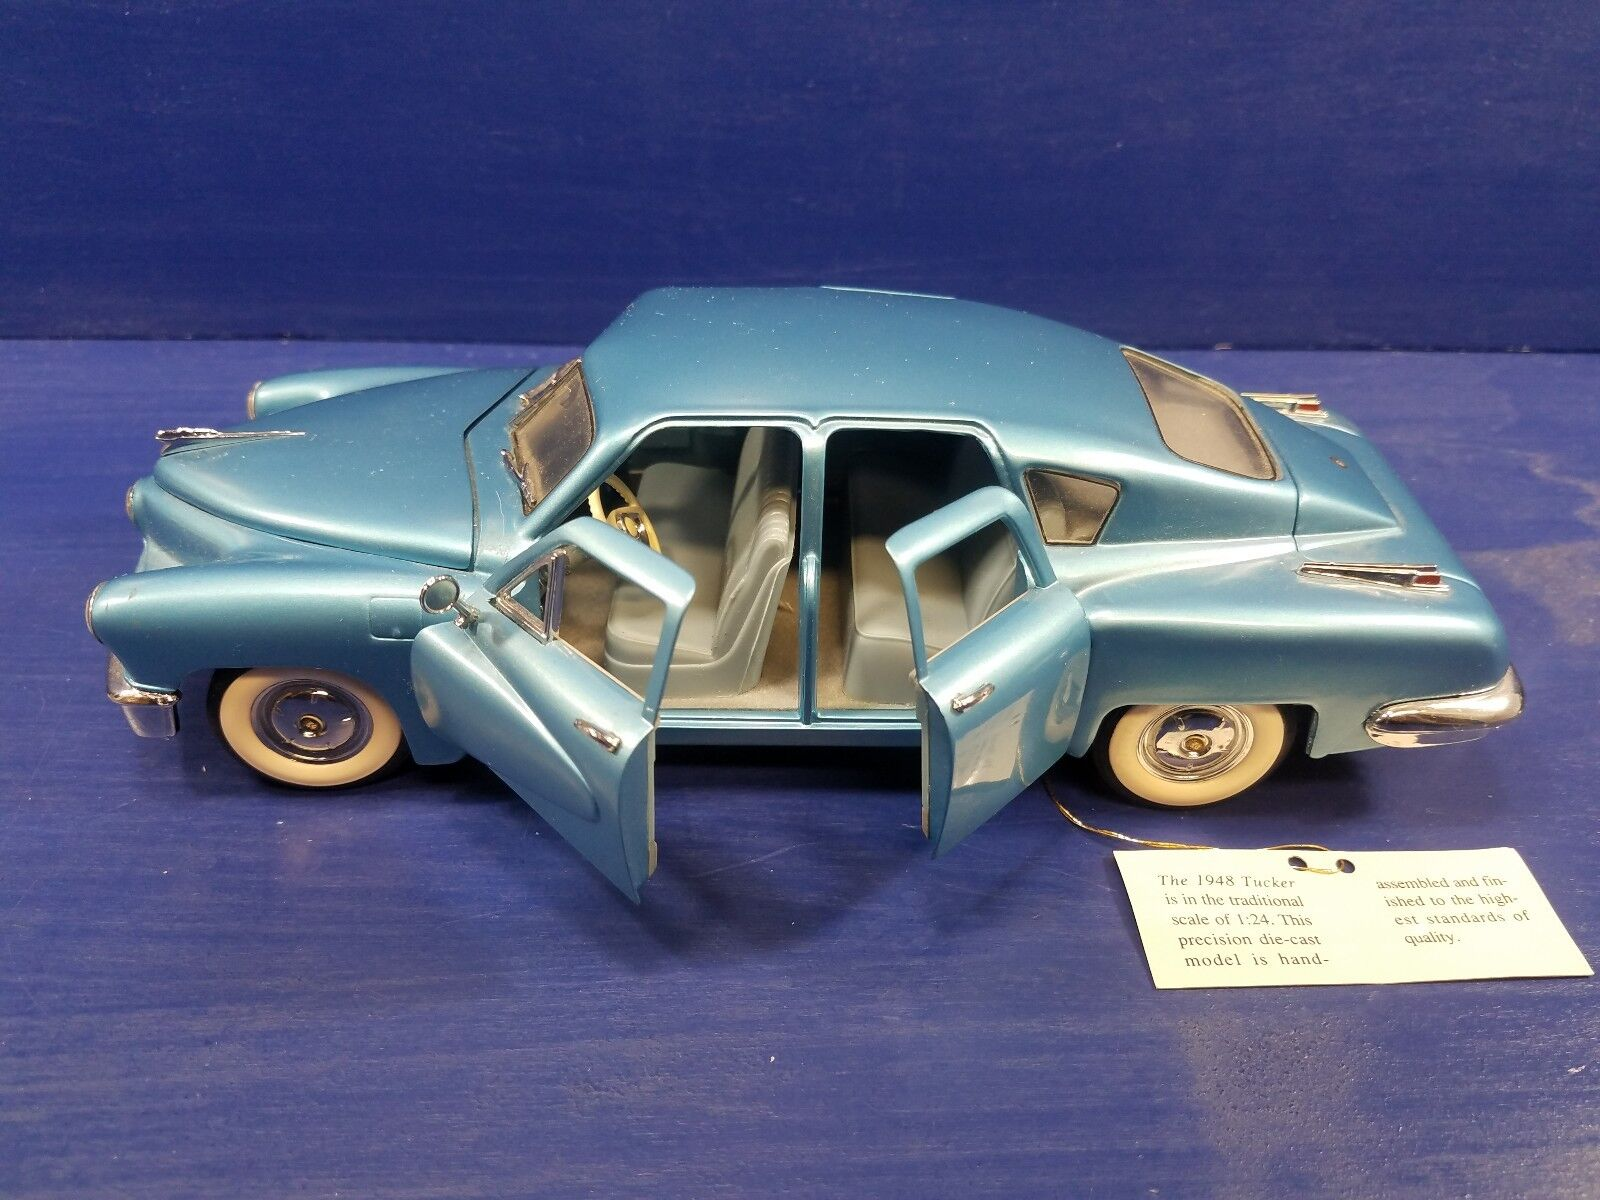 FRANKLIN MINT 1948 TUCKER DIECAST RARE 1 24 SCALE WITH TAG